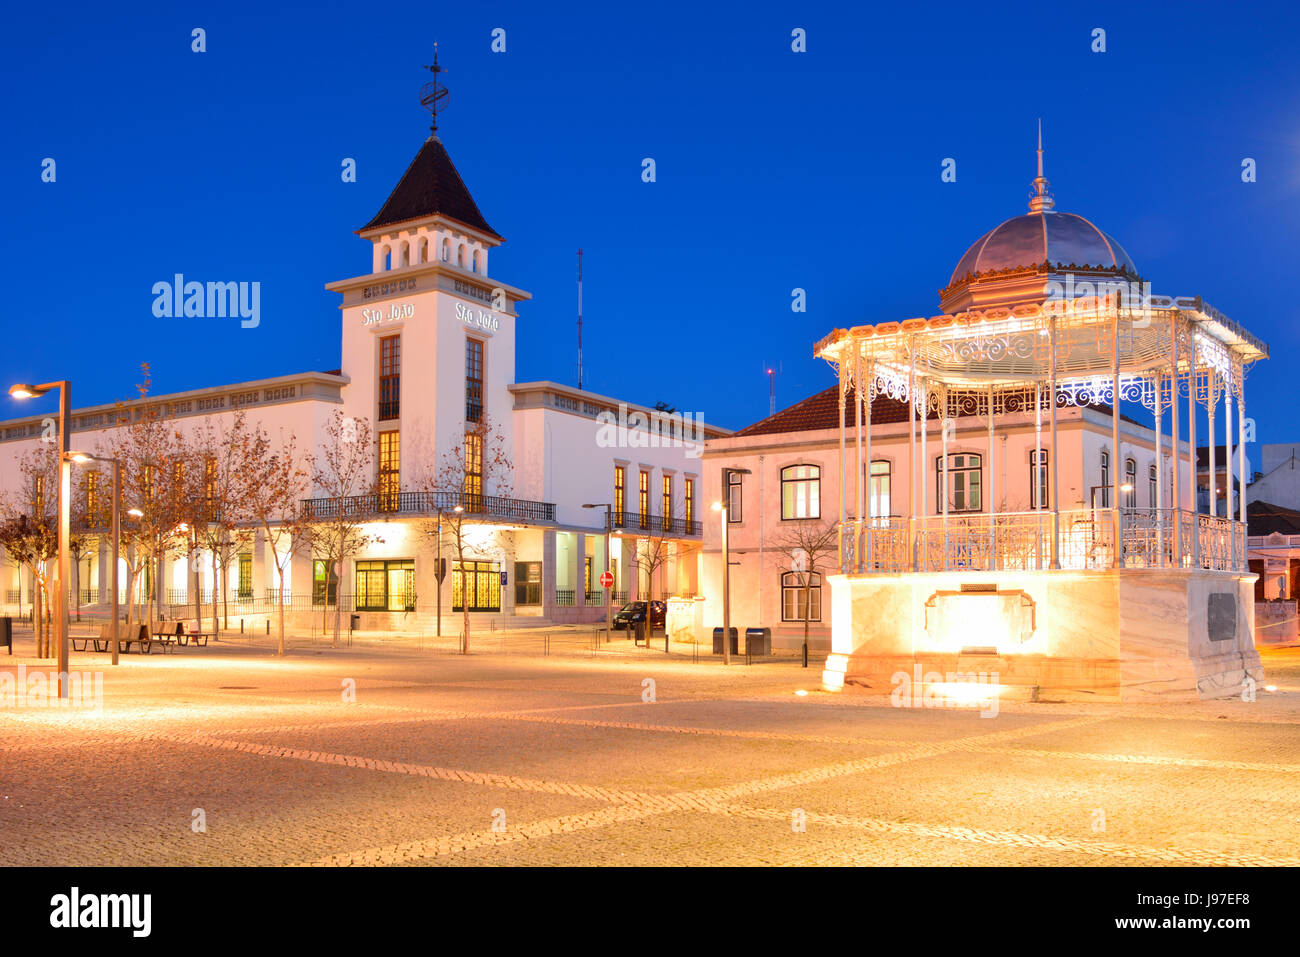 Sao Joao Cinema dating from 1952 and the Bandstand of Palmela, dated back to 1927, at dusk. Portugal - Stock Image